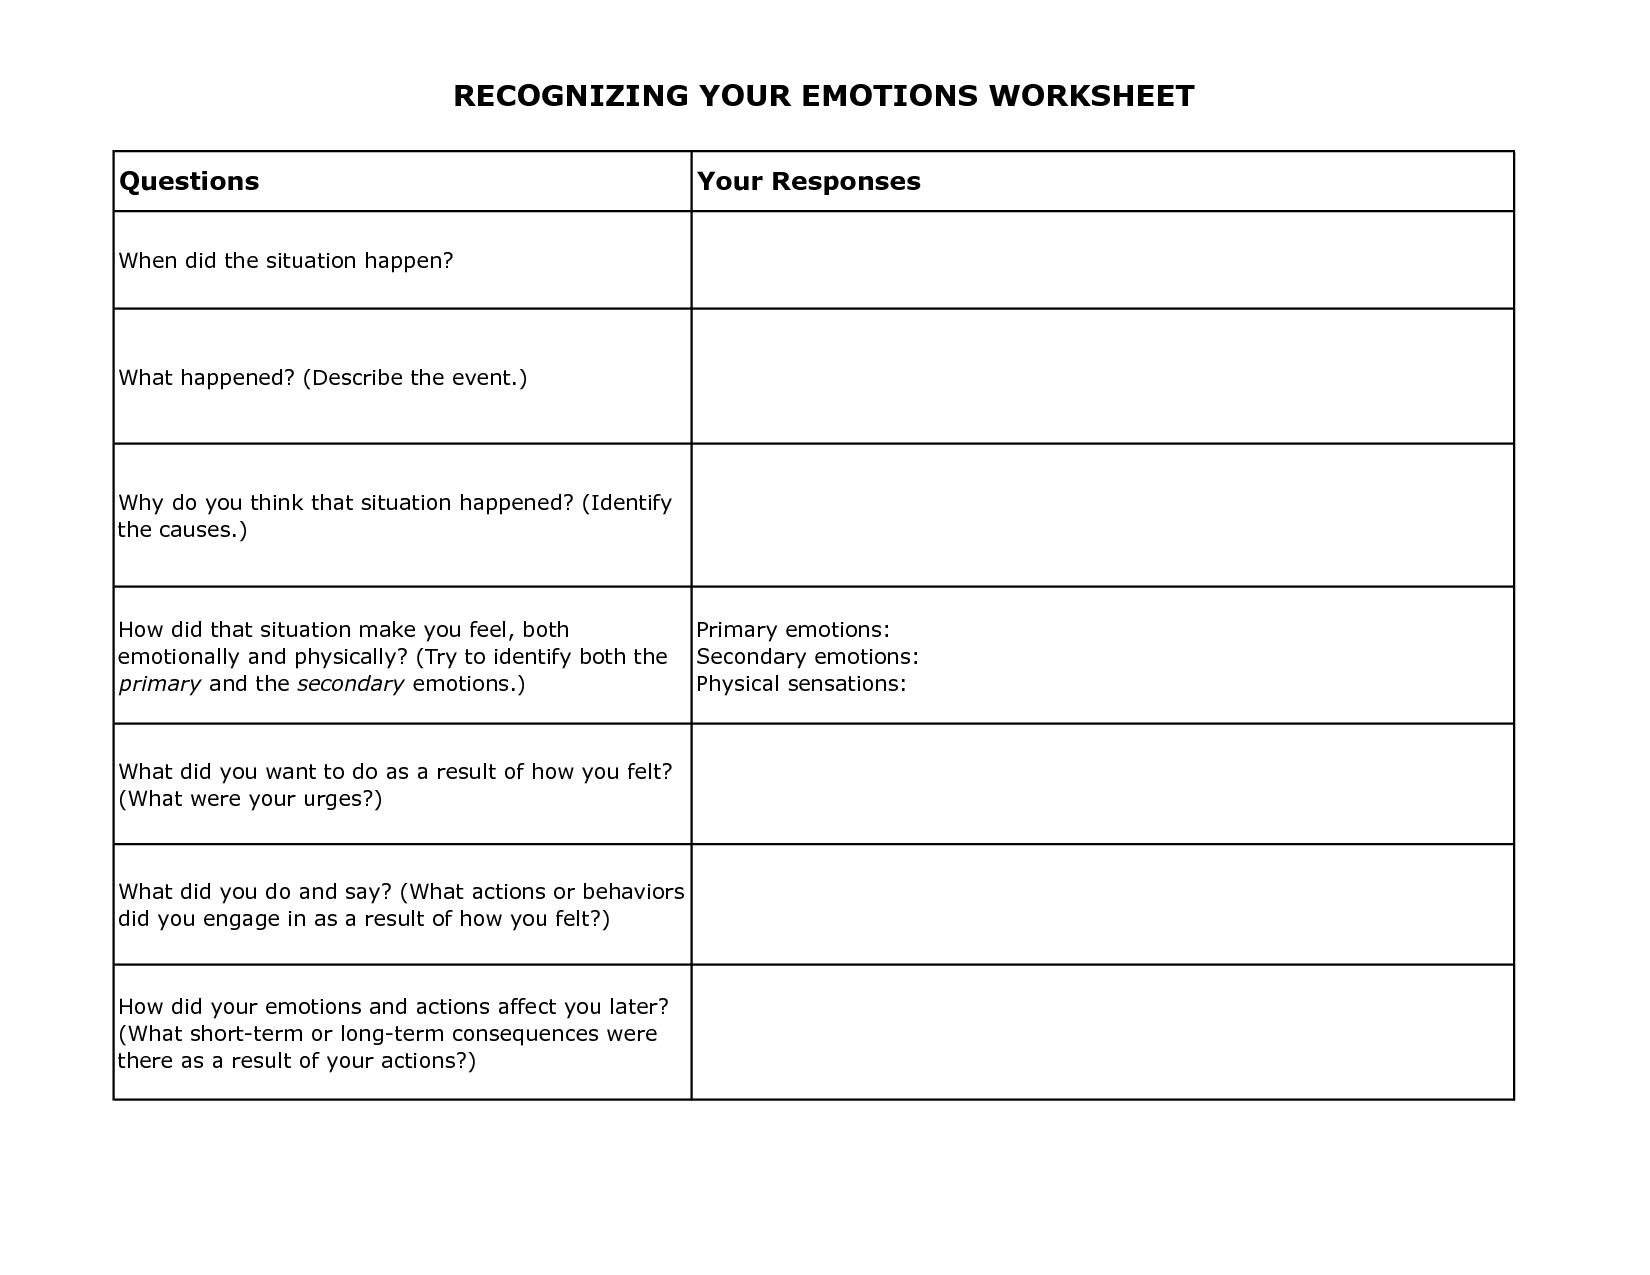 Free Printable Dbt Worksheets | Recognizing Your Emotions Worksheet - Free Printable Worksheets On Depression